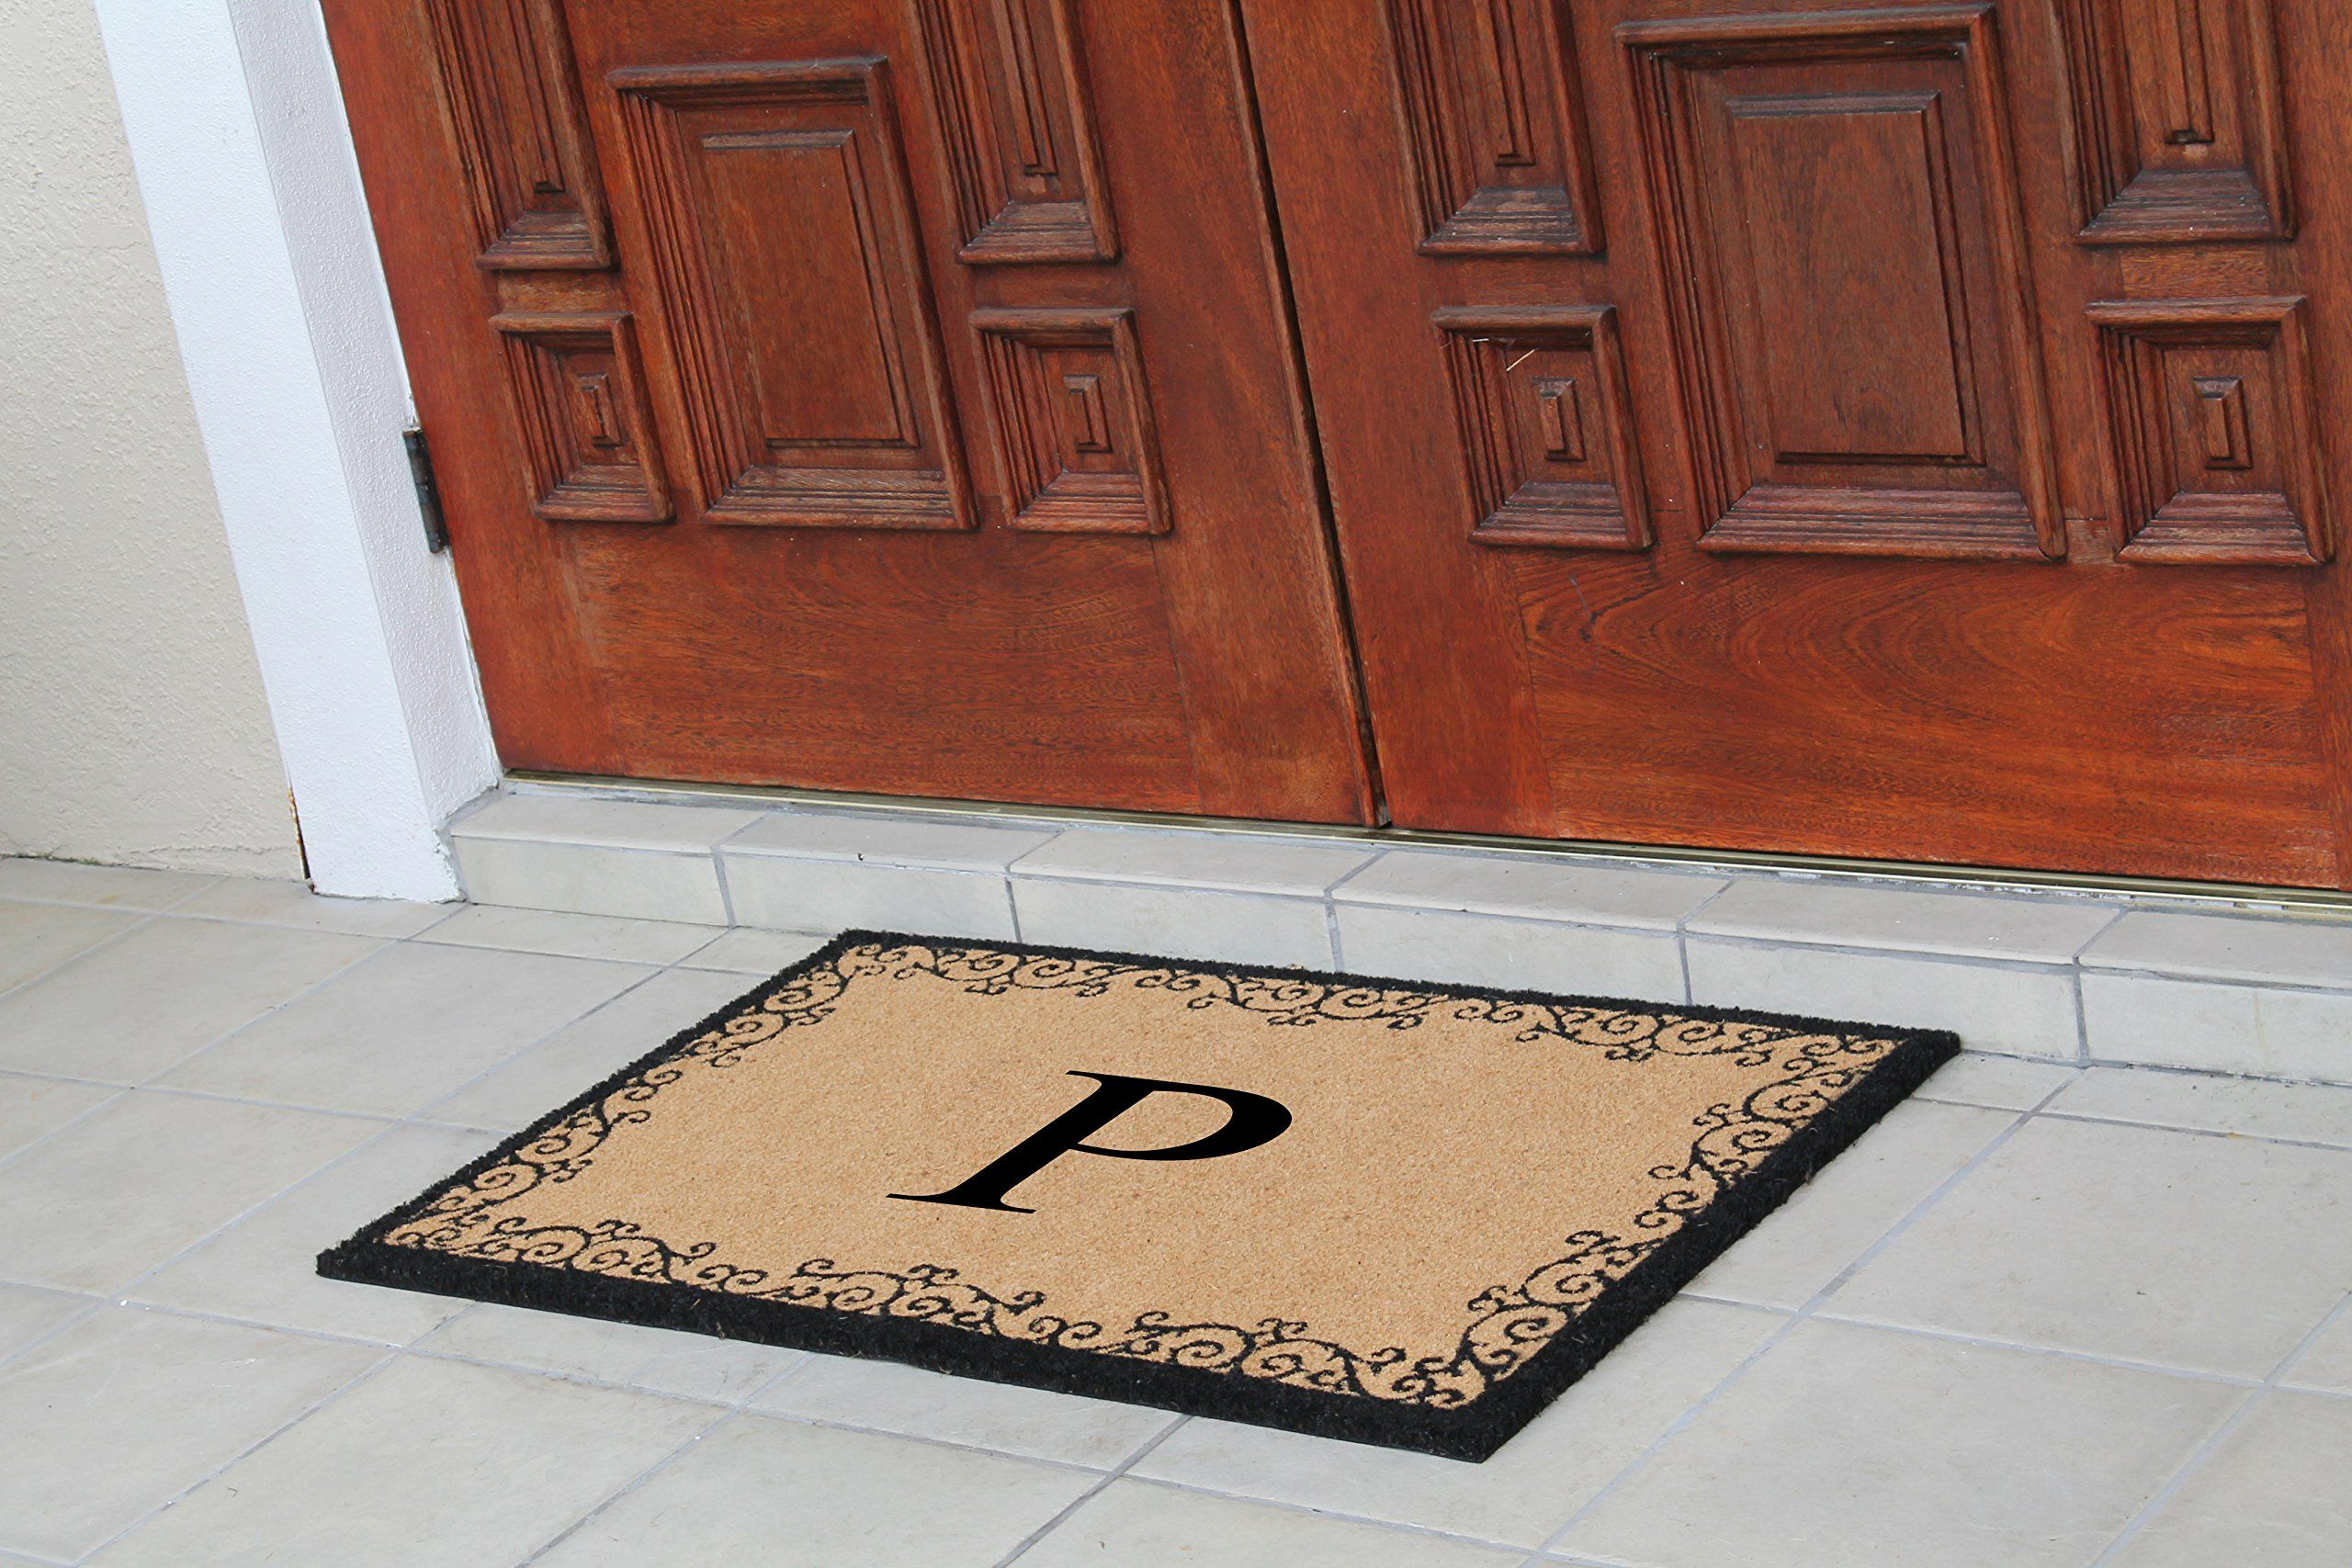 monogram deforge mat monogrammed joss outdoor door pdp main reviews doormat